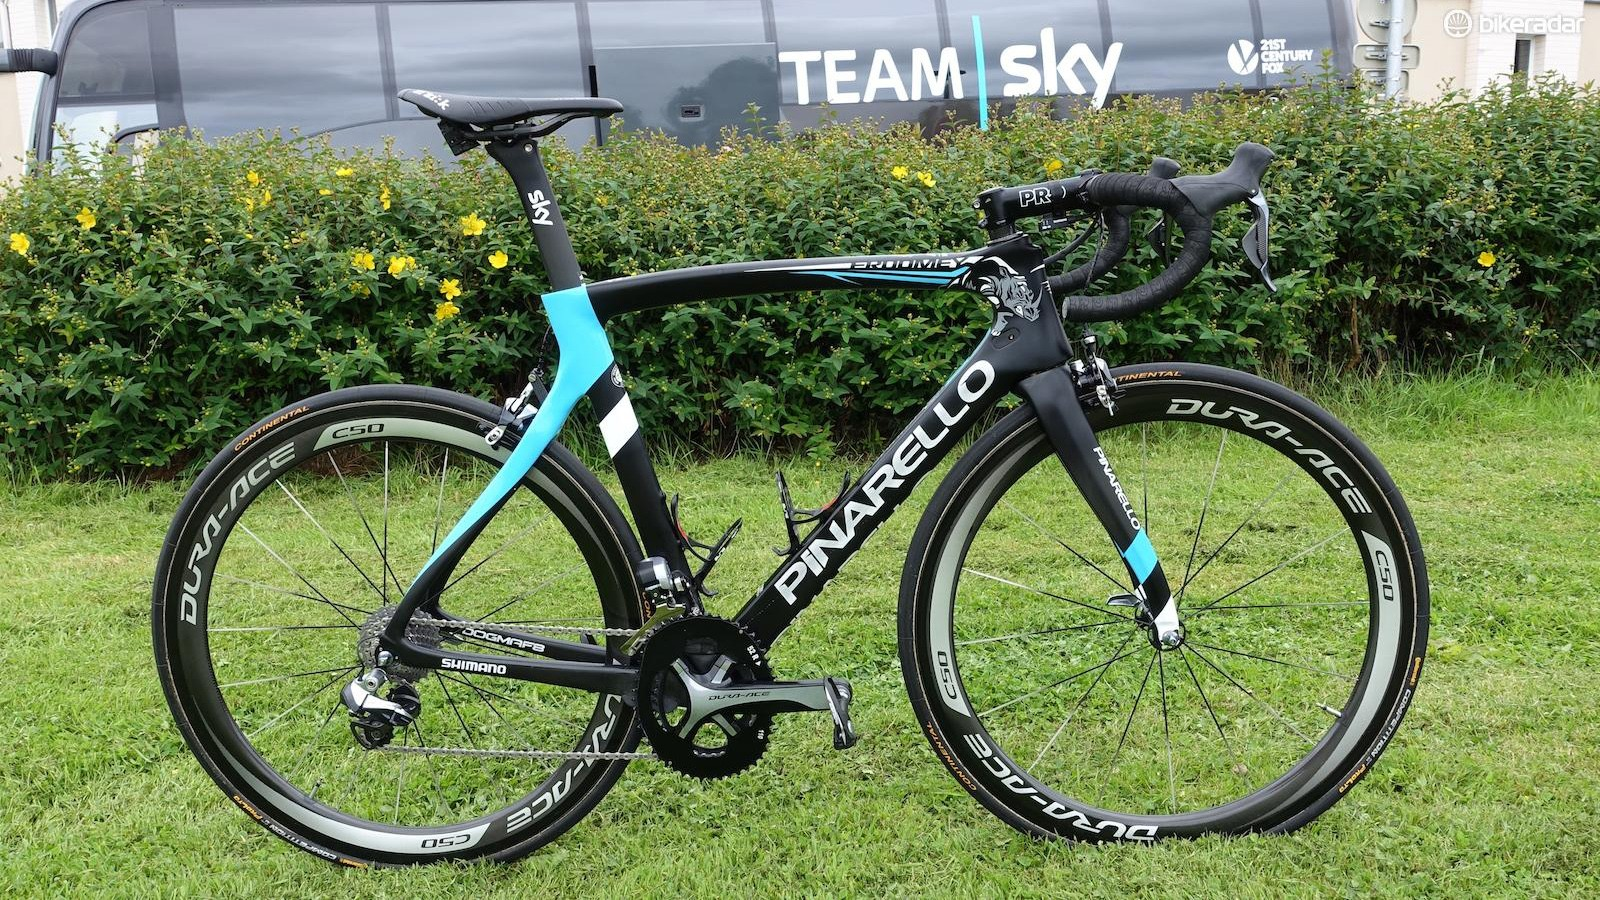 Details like the custom rhino decals and Osymetric chainrings help Chris Froome's Pinarello Dogma F8 stand out from the rest of the Team Sky bikes